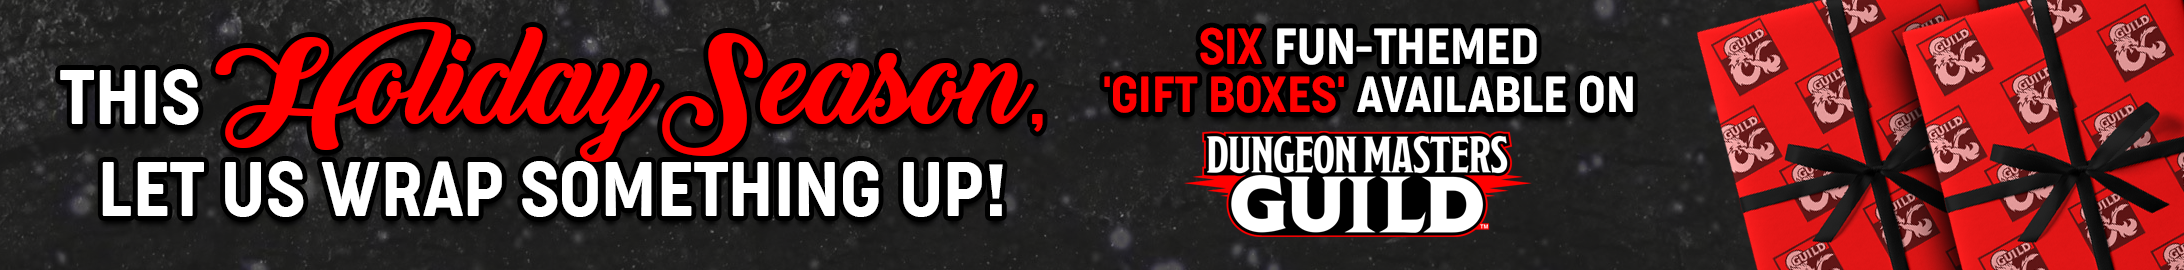 Gift Boxes sale @ Dungeon Masters Guild